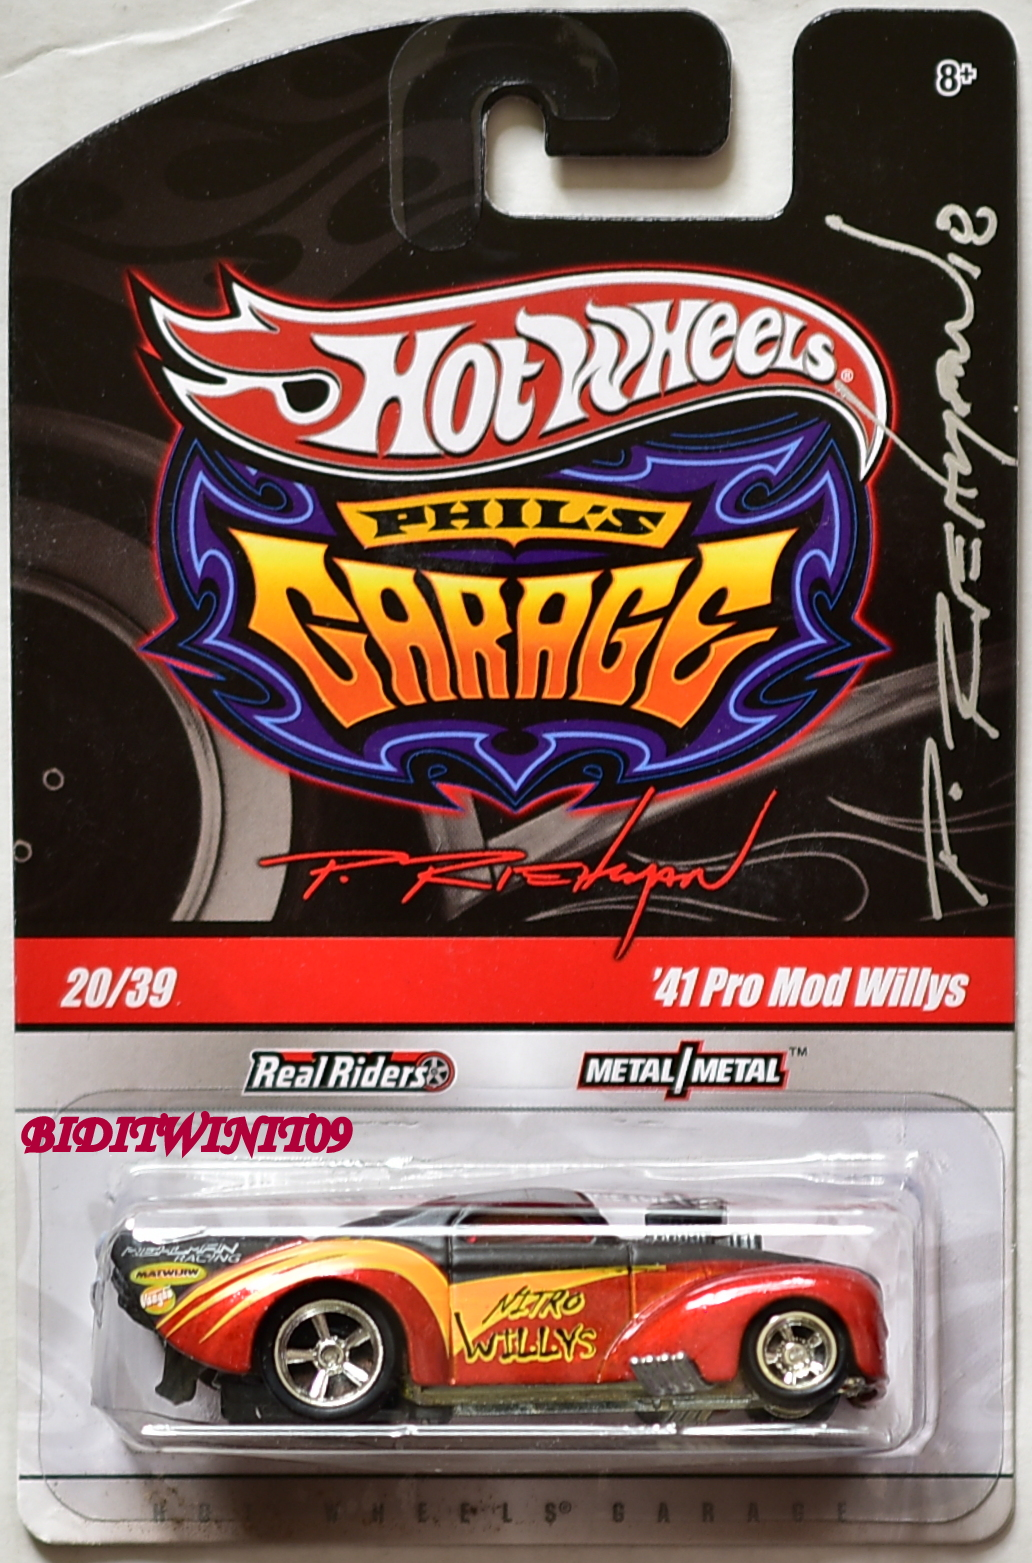 HOT WHEELS PHIL'S GARAGE '41 PRO MOD WILLYS SINGED BY PHILIP RIEHLMAN E+